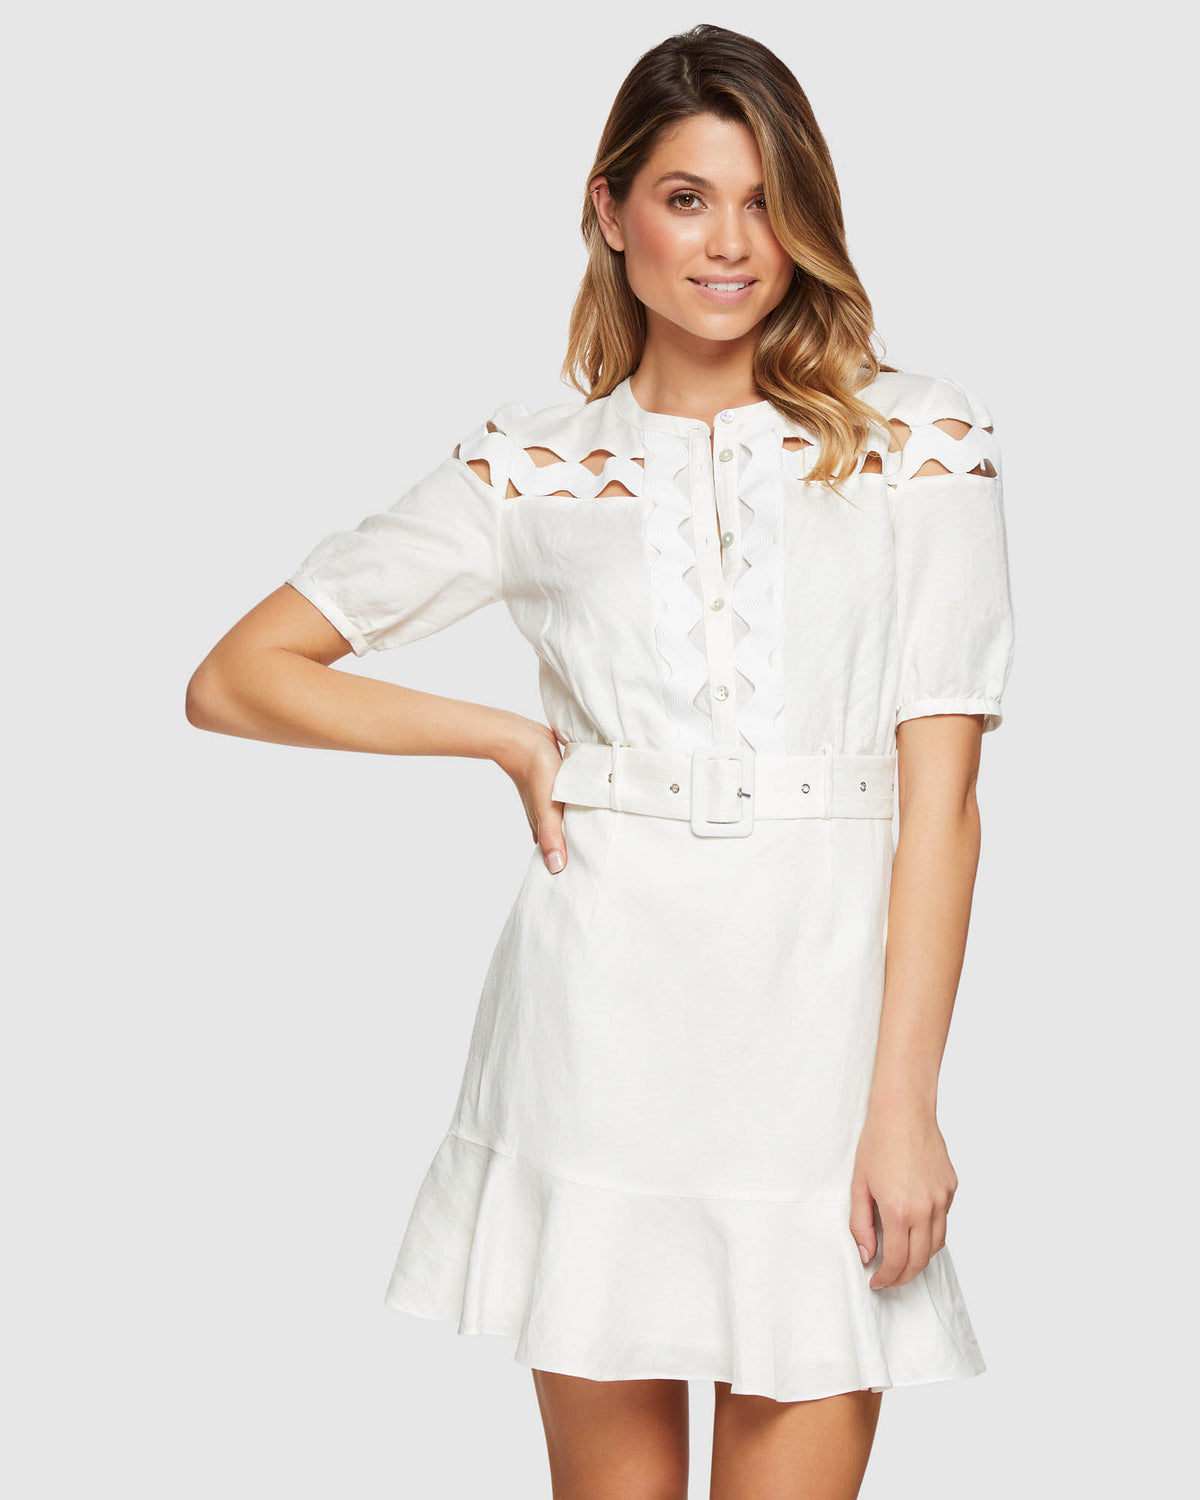 TASHA INSERT TRIM DRESS IVORY